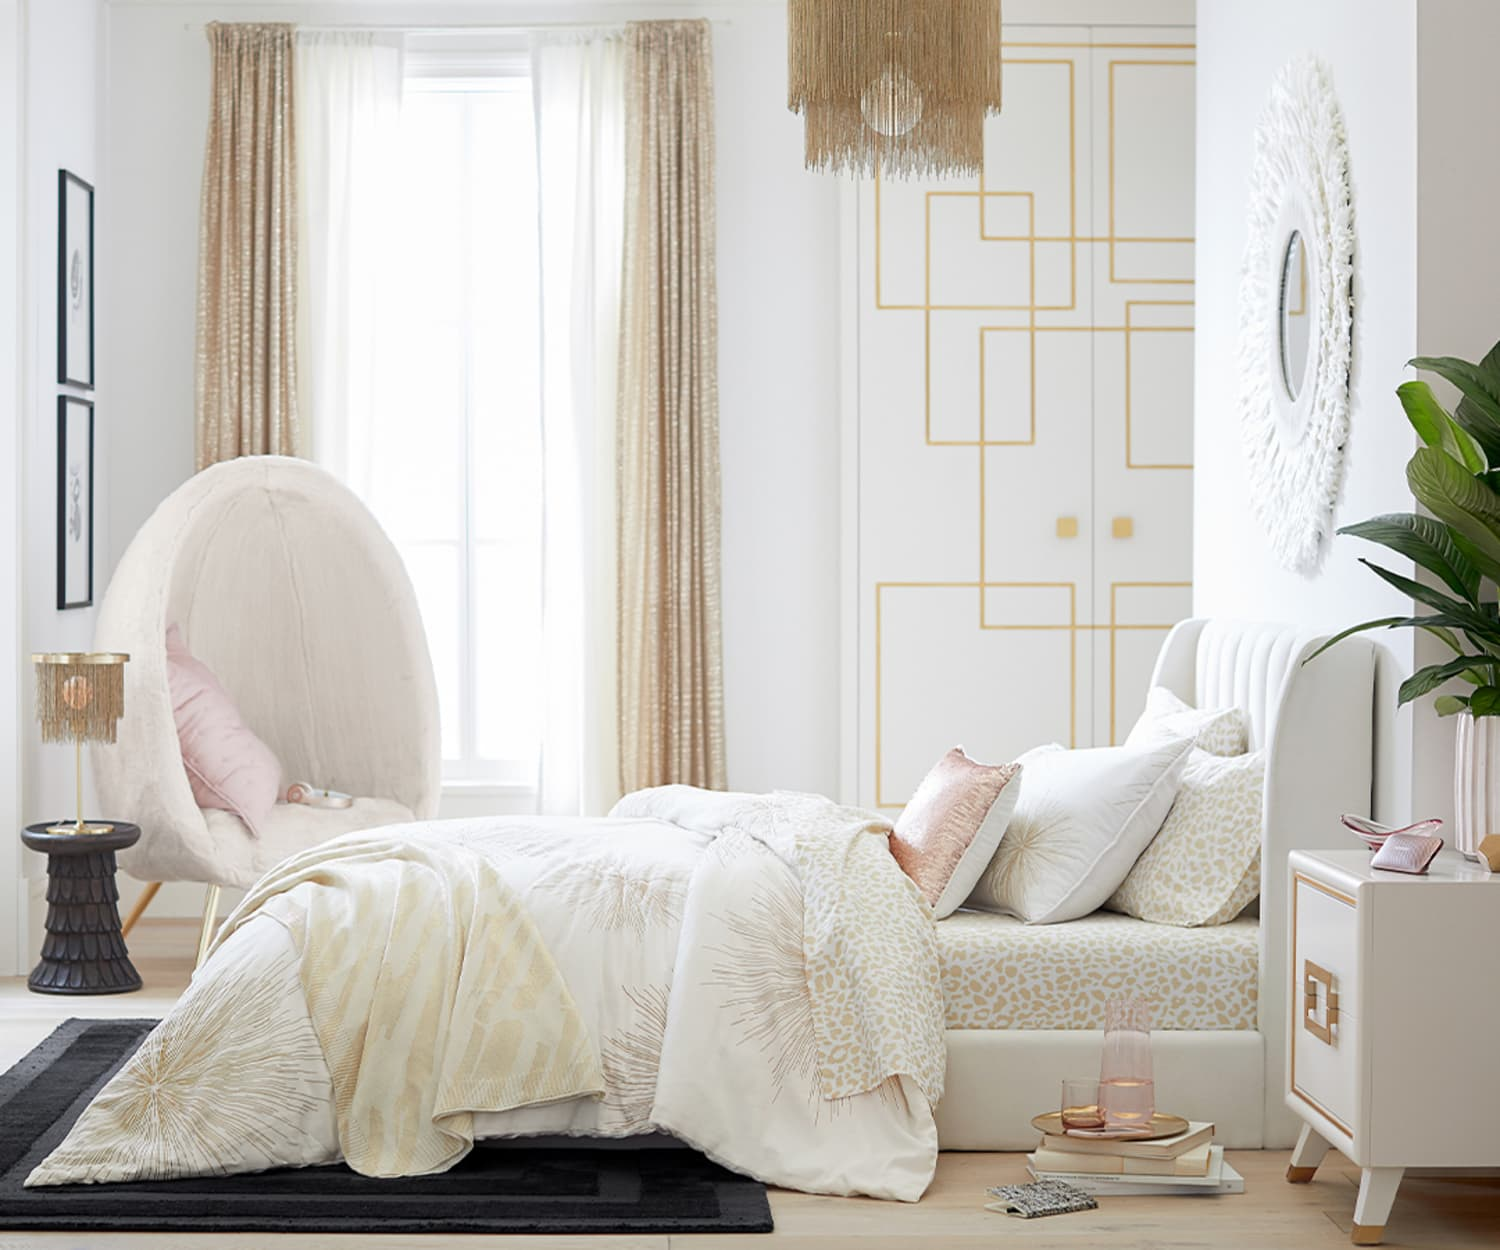 Rachel Zoe's Pottery Barn Teen Collection Is Seriously Luxe—and We Want Everything